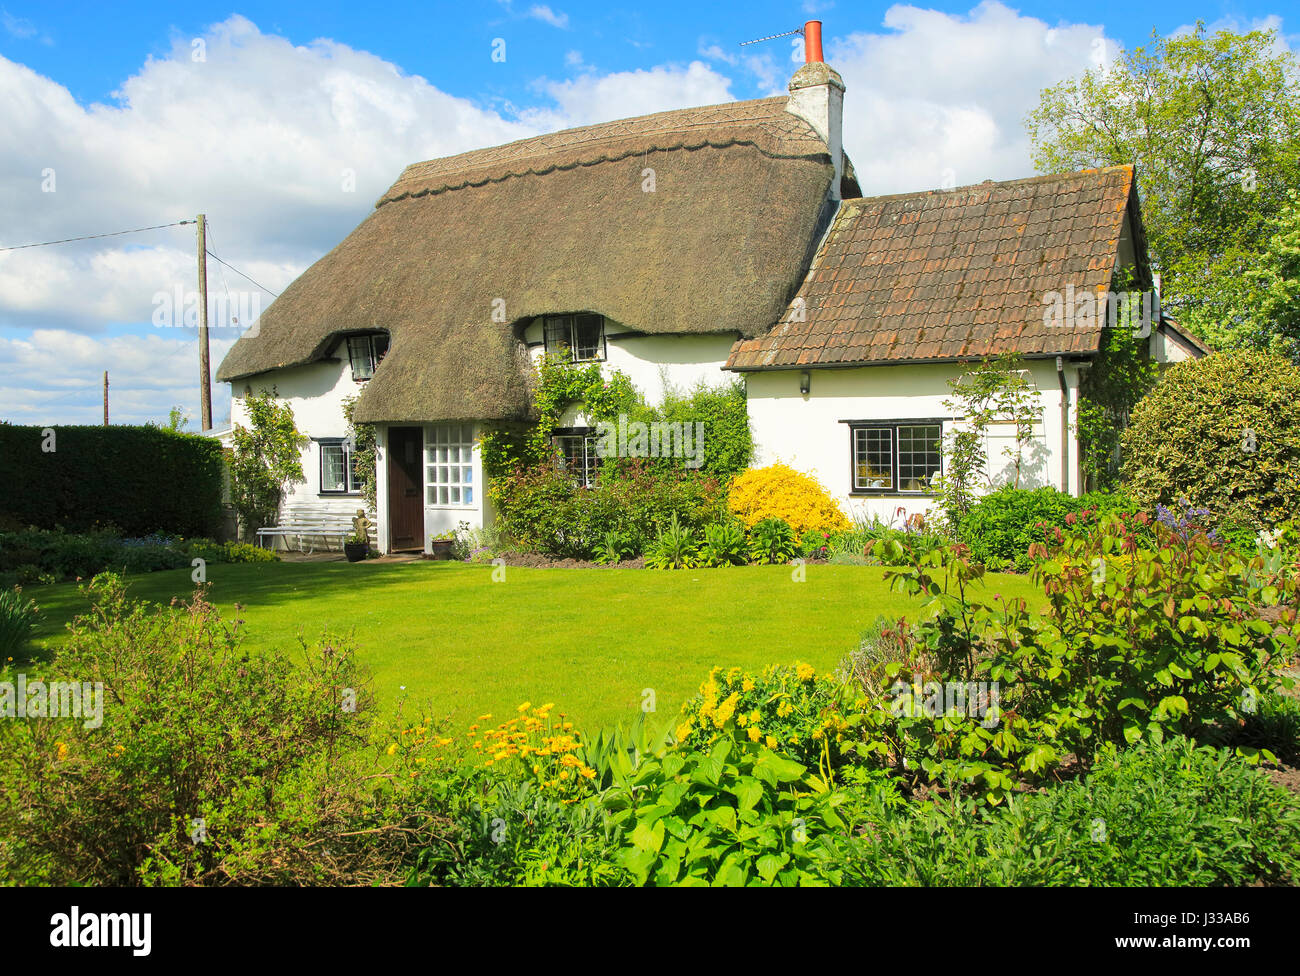 Pretty thatched country cottage and garden, Cherhill, Wiltshire, England, UK - property released - Stock Image